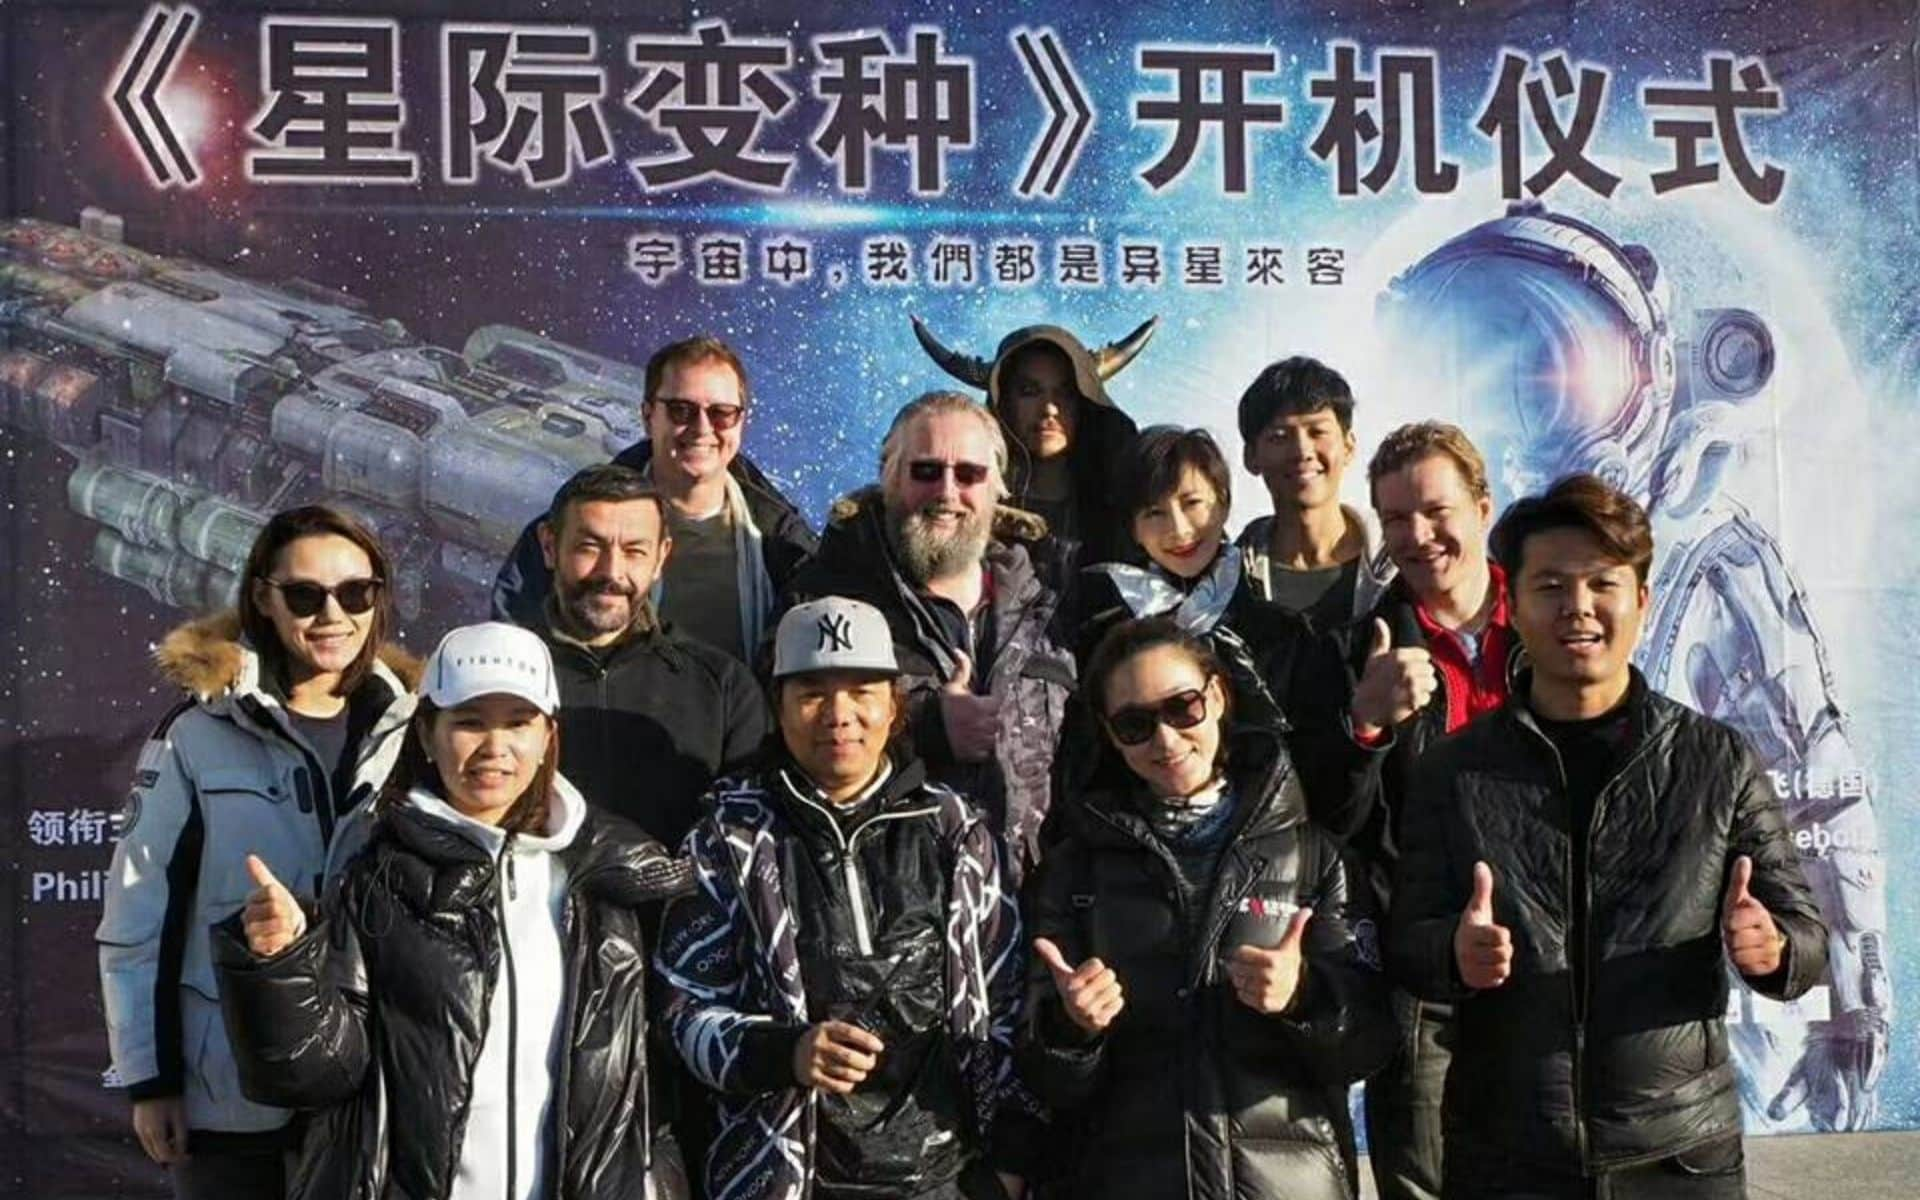 Philippe Joly - Opening Ceremony in China for sci-fi film Variant